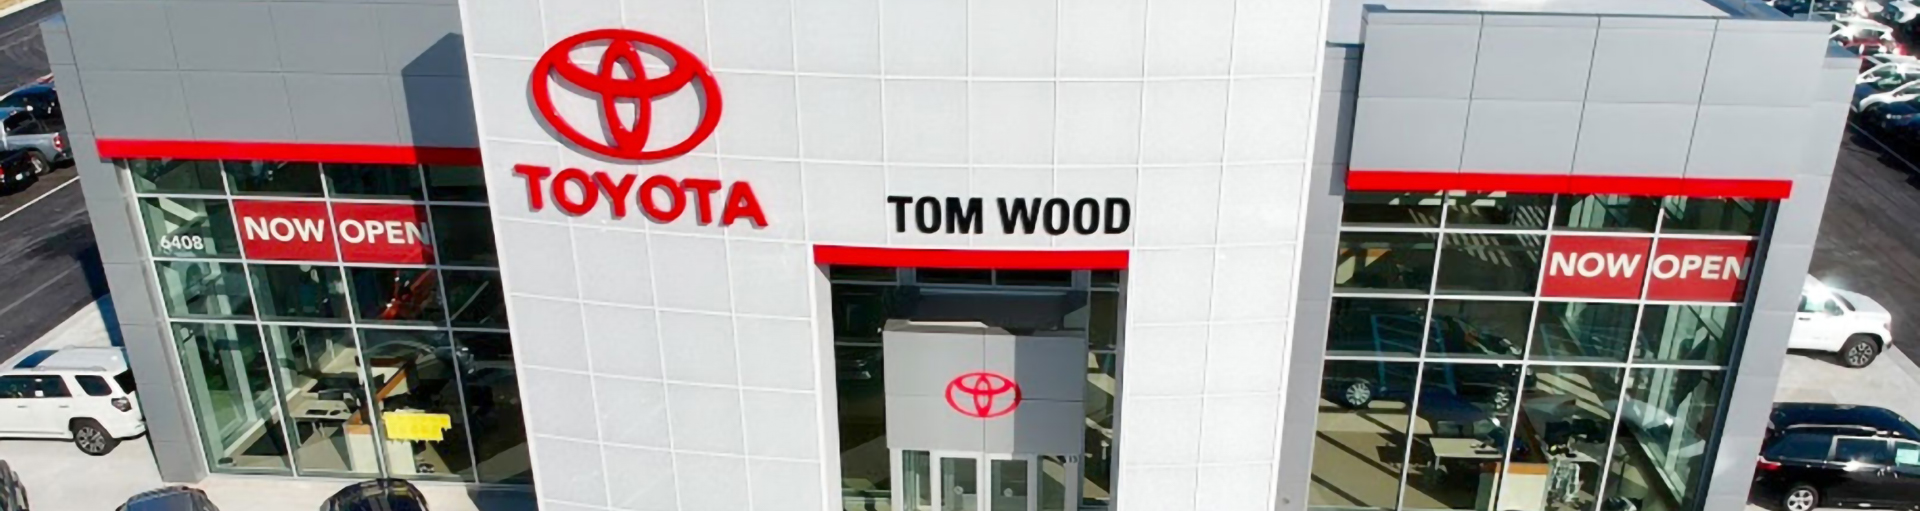 Tom Wood Toyota Dealership